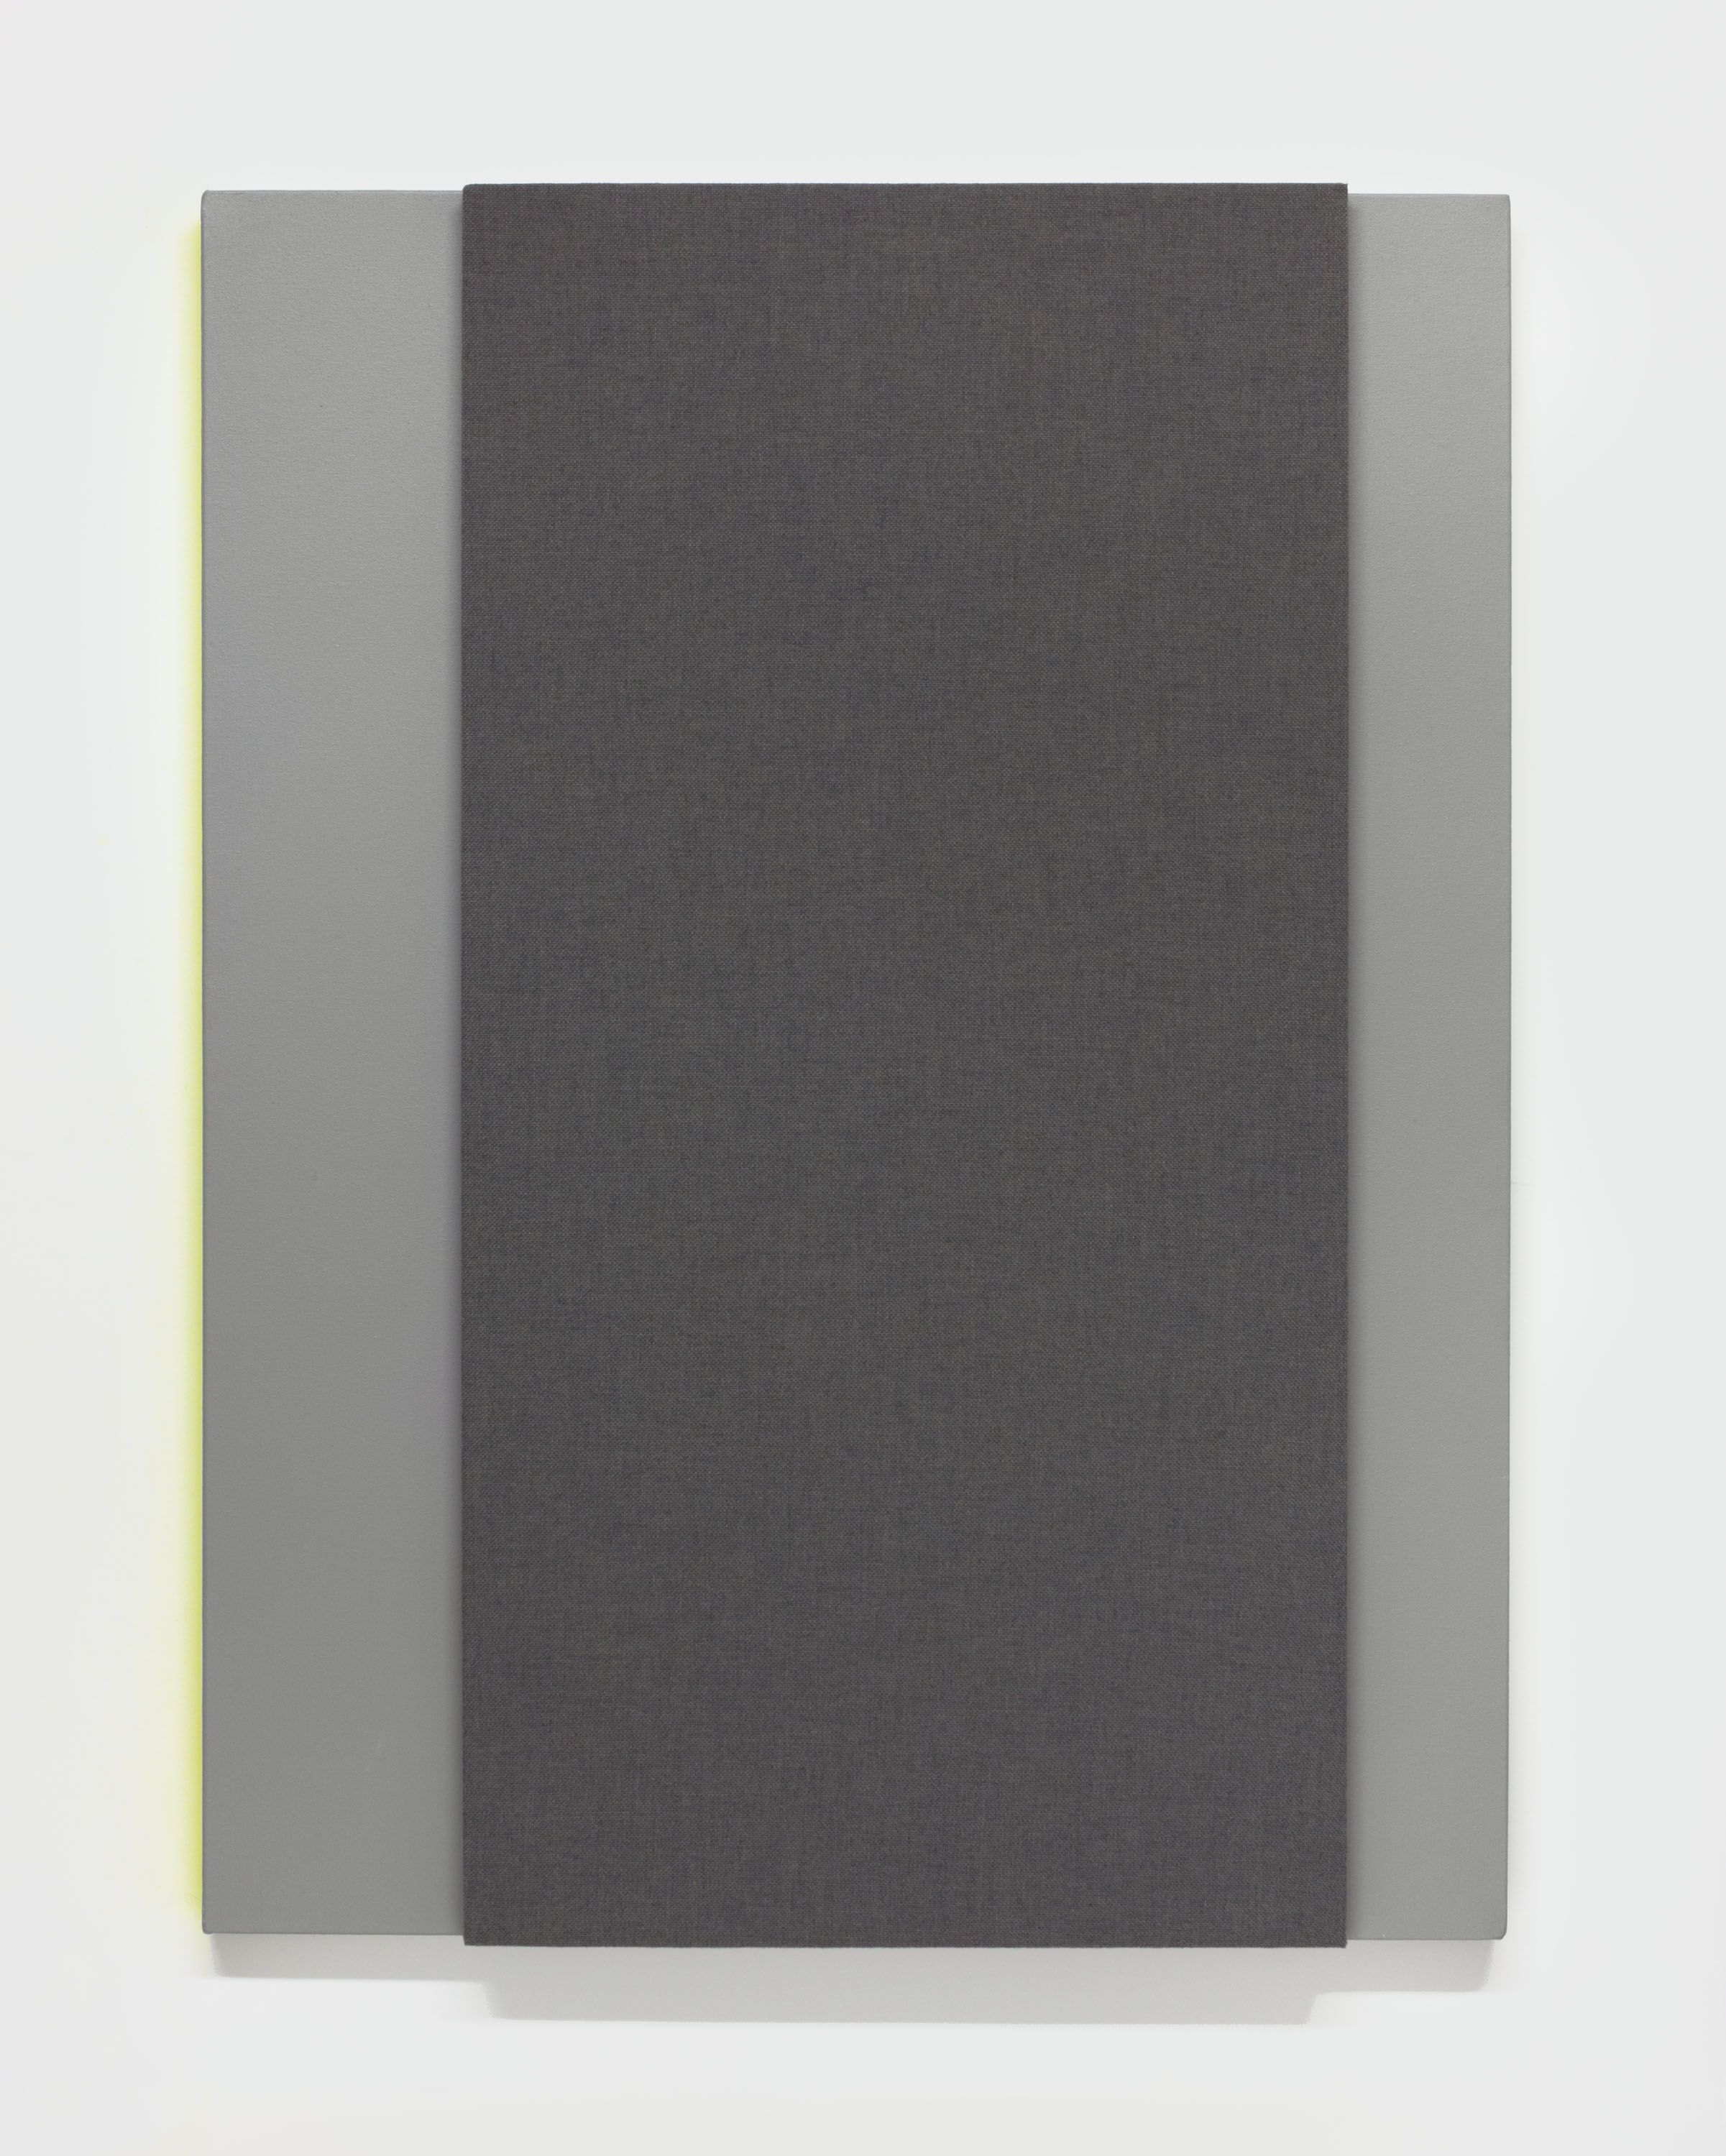 Dark Gray with Left Resonance, 2014--Acoustic absorber panel and acrylic paint on canvas, 36 x 48 inches each